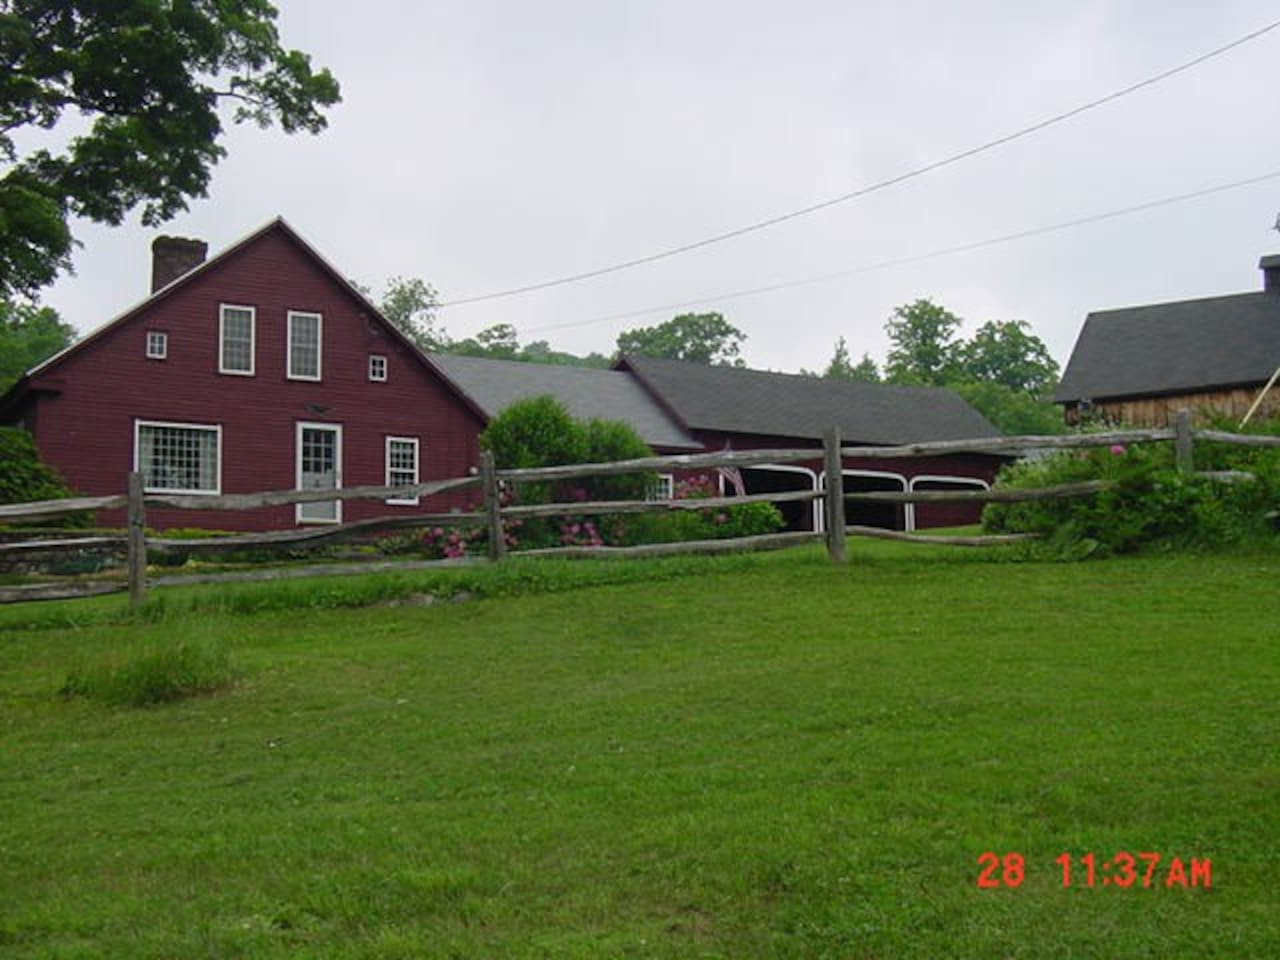 Big house, little house, back house, barn...that's the Earl Henry farm - 1777